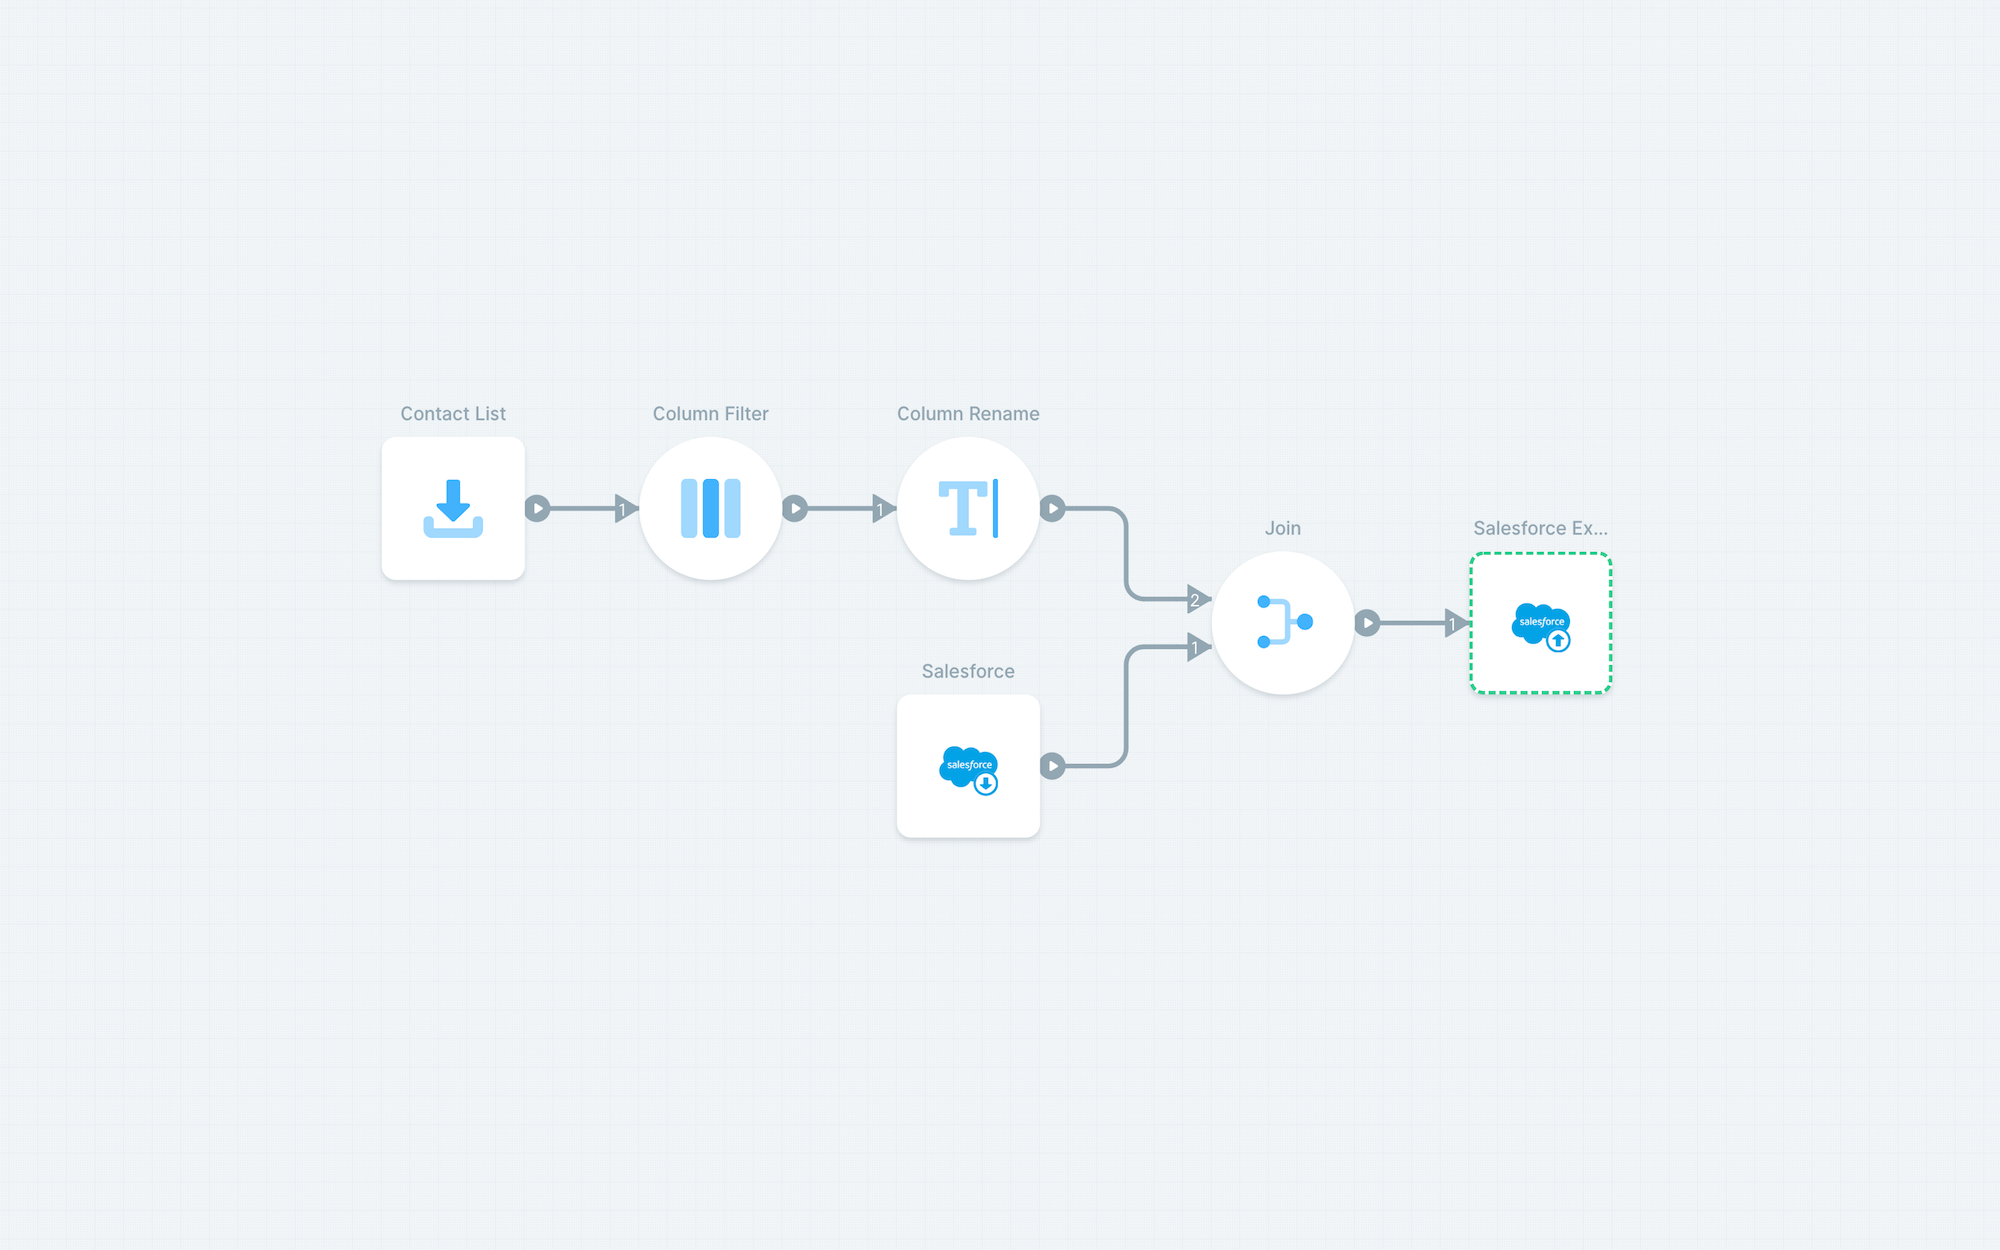 Syncing email interaction data from a CSV into a CRM